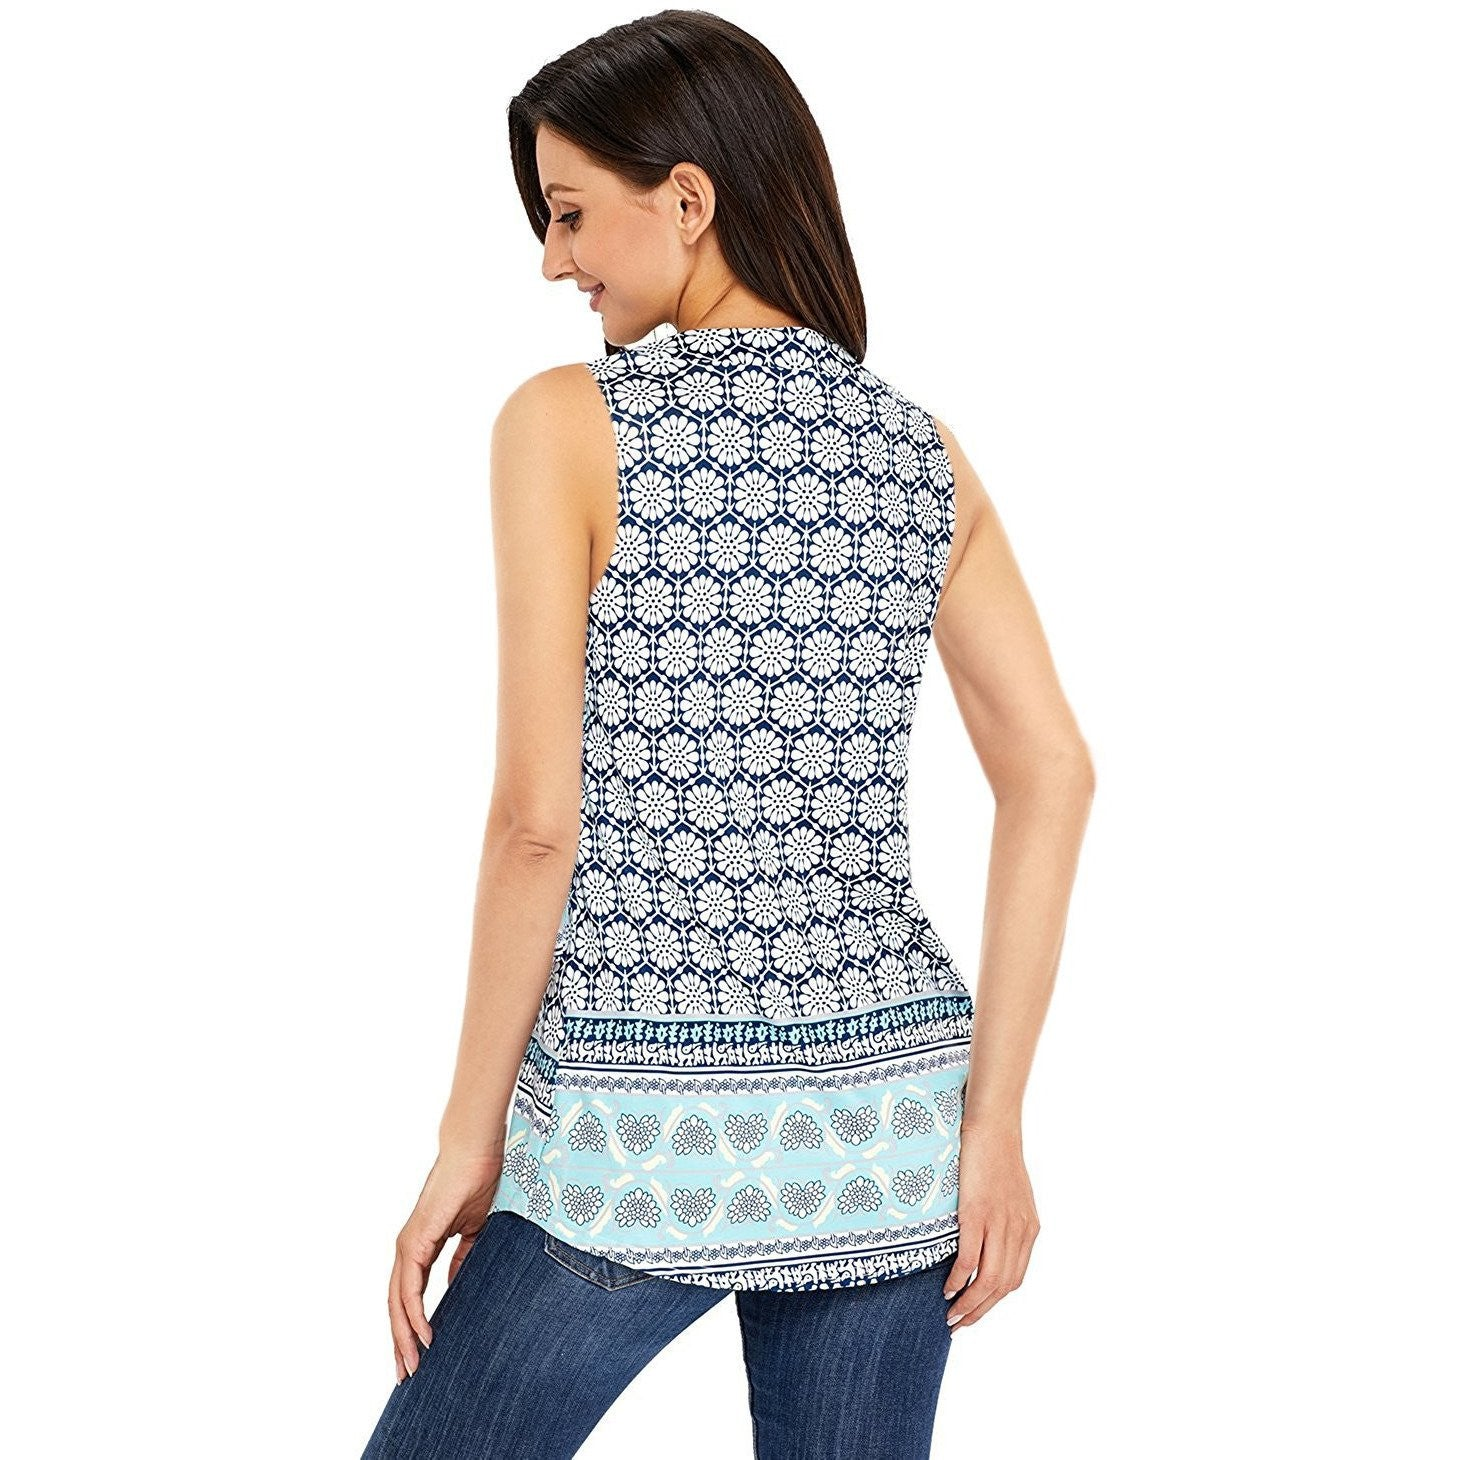 KELLIPS Blue Printed Tank Top - KELLIPS